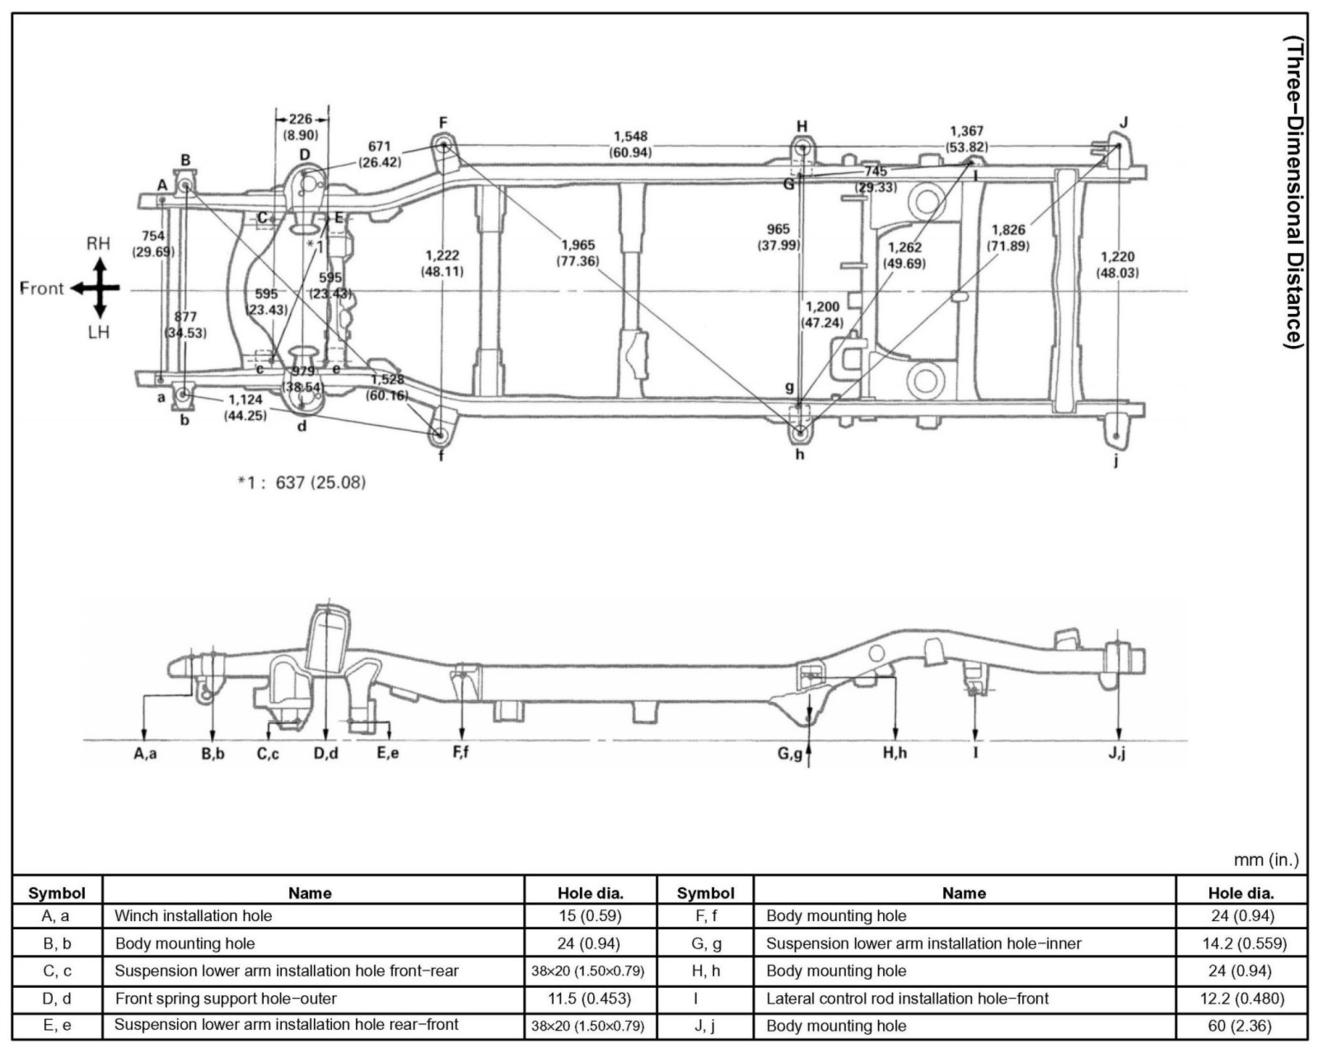 1994 Ford Ranger Frame Diagram Wiring Services Fuse Box 1998 Explorer Dimensions Pixels1st Com Rh Layout